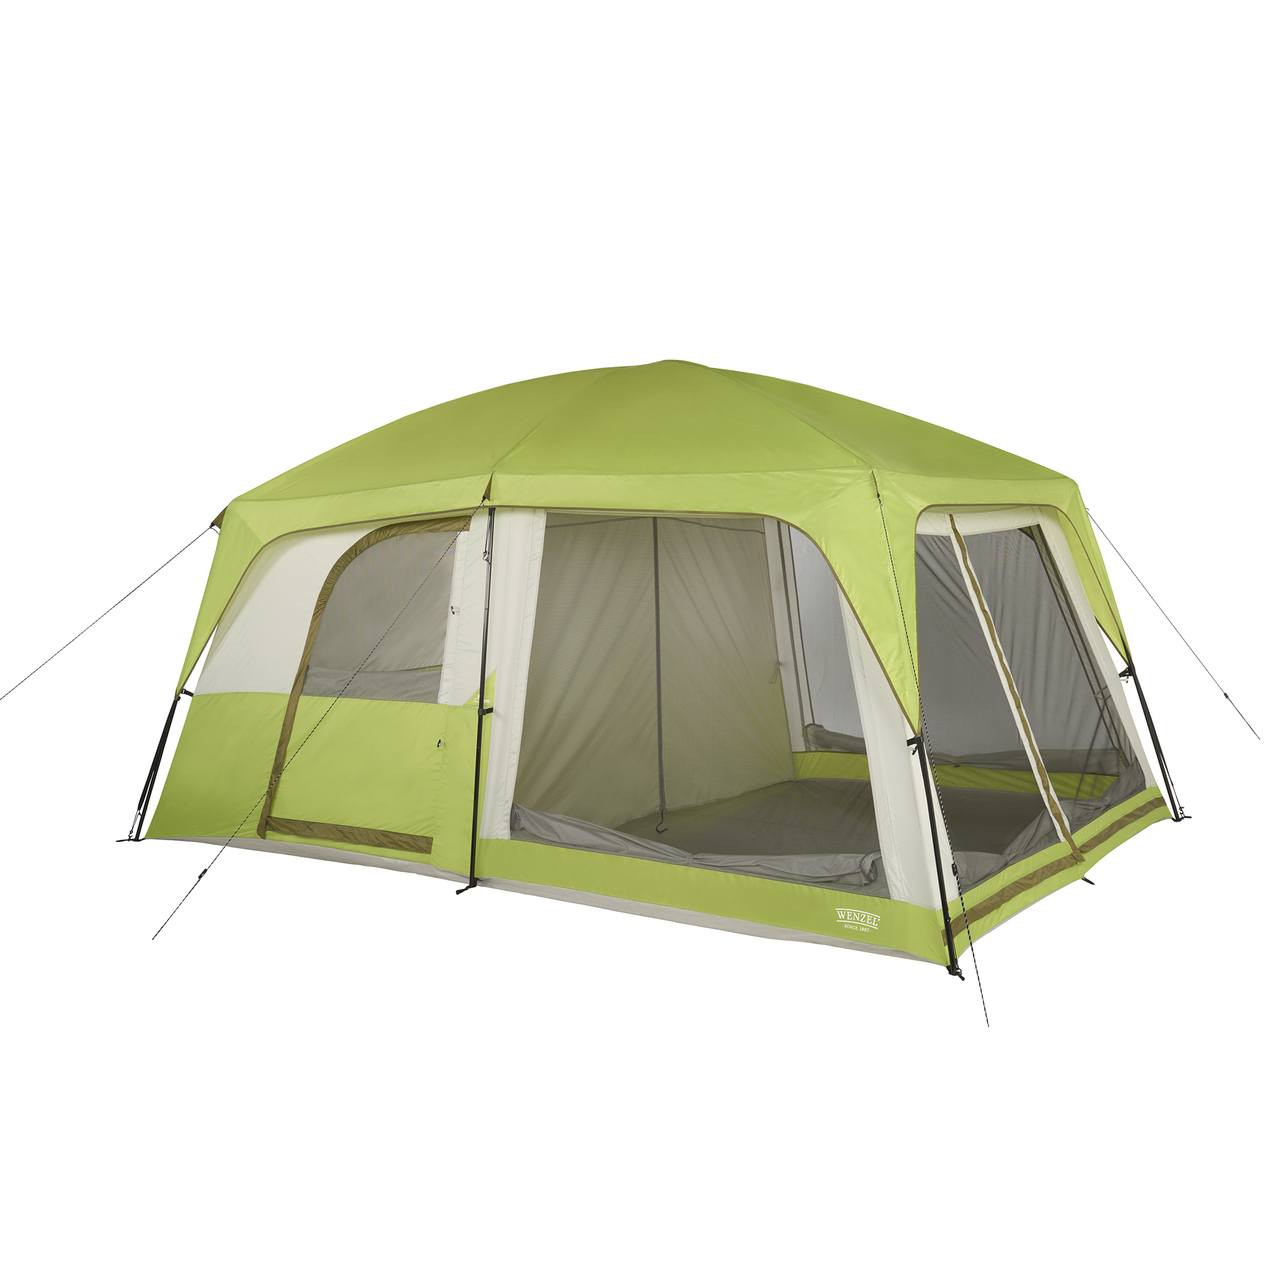 Wenzel Eldorado 8 tent, green and tan, completely set up with the rain fly on, guy lines extended, the inside doors set up, and the inside screen windows rolled down